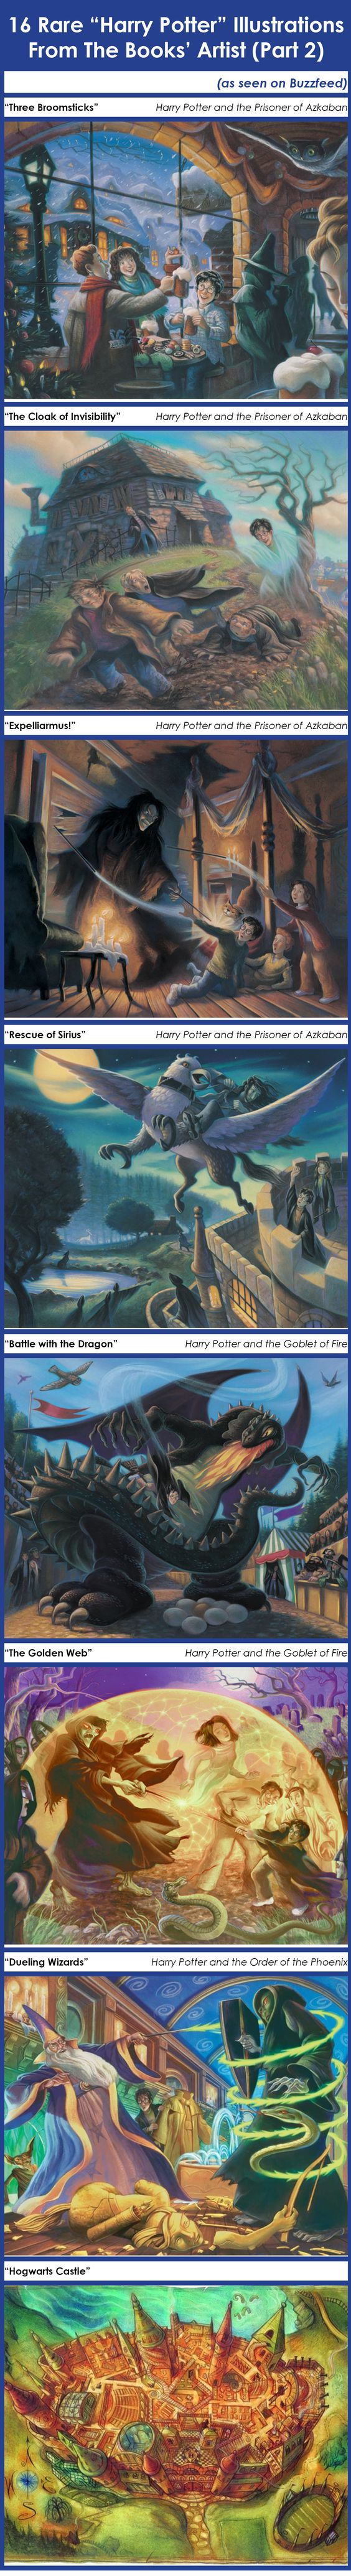 Harry Potter Book Illustrations ~ Rare quot harry potter illustrations from the books